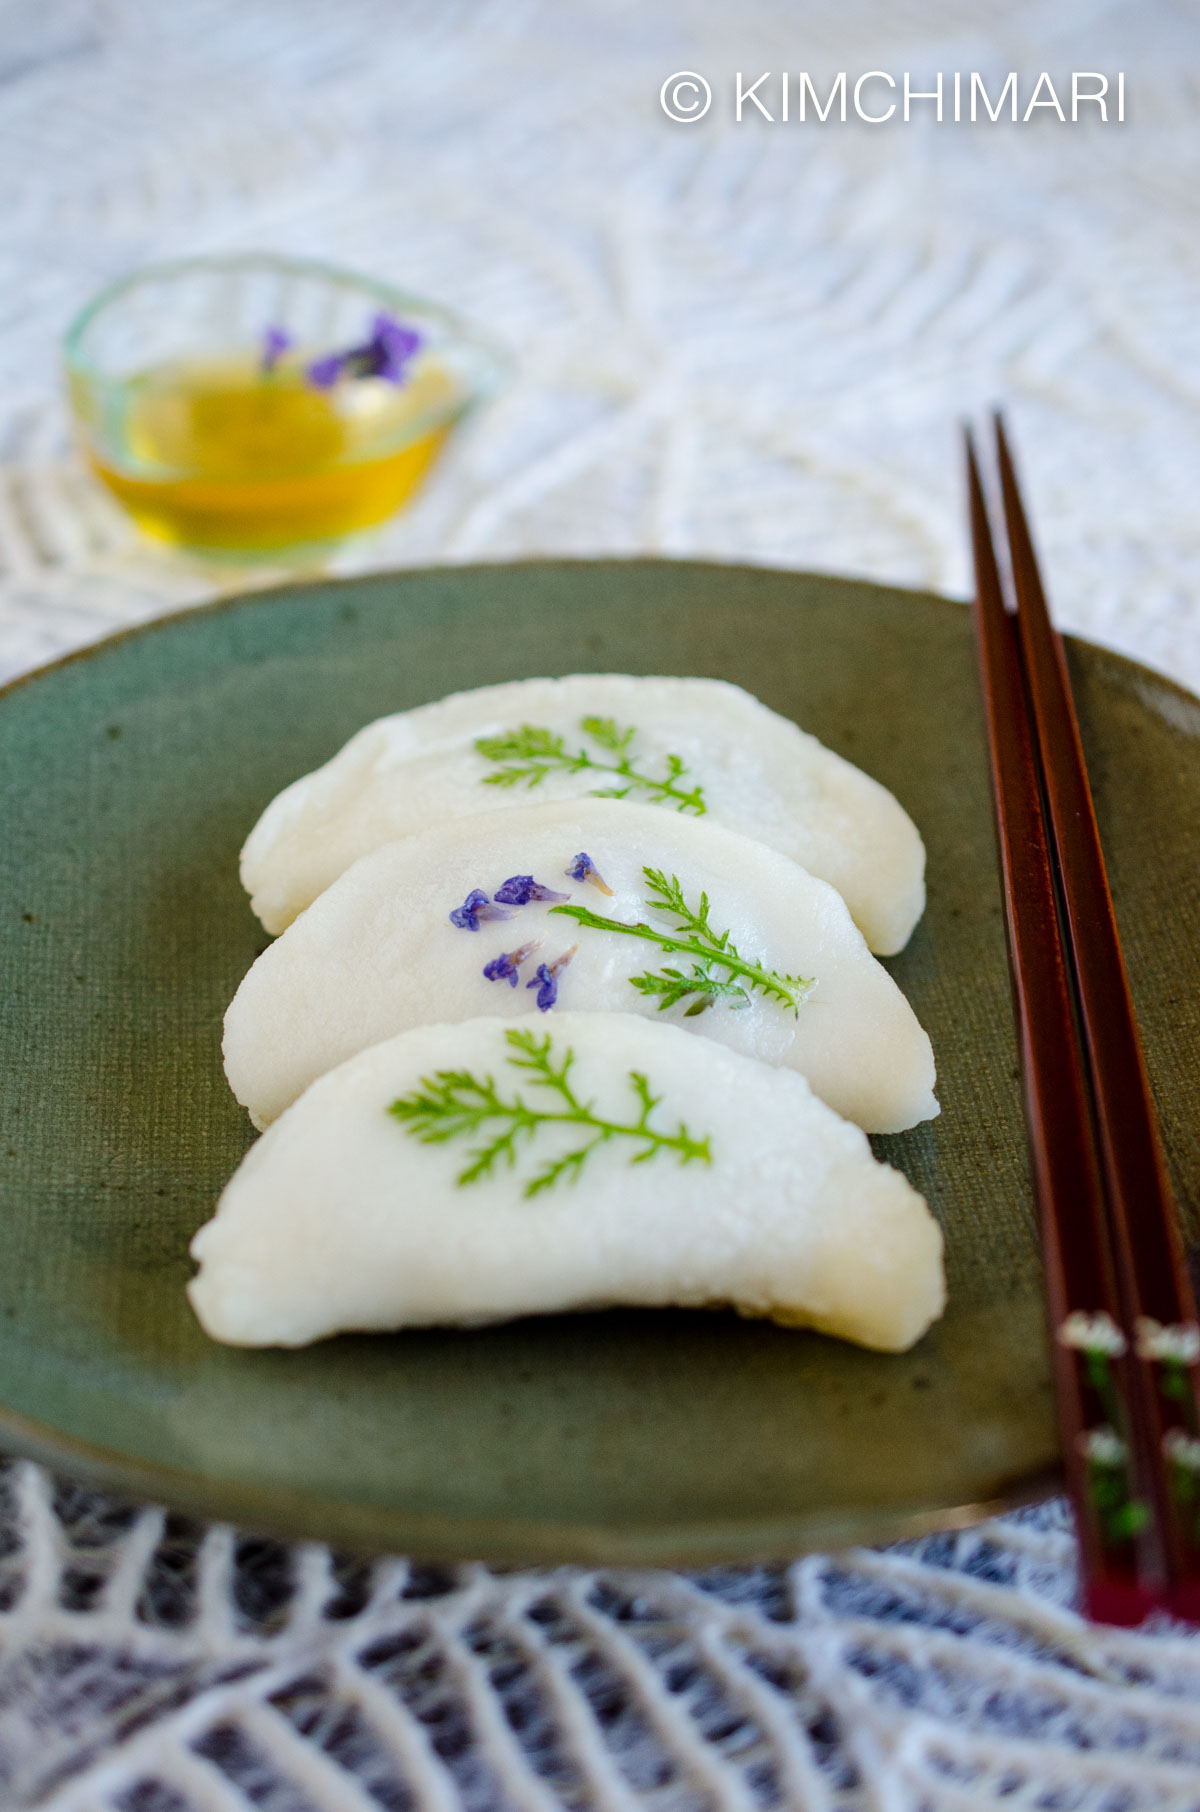 Pan-fried Rice Cake Dumplings stuffed with Sweet Red Beans(Bukkumi)